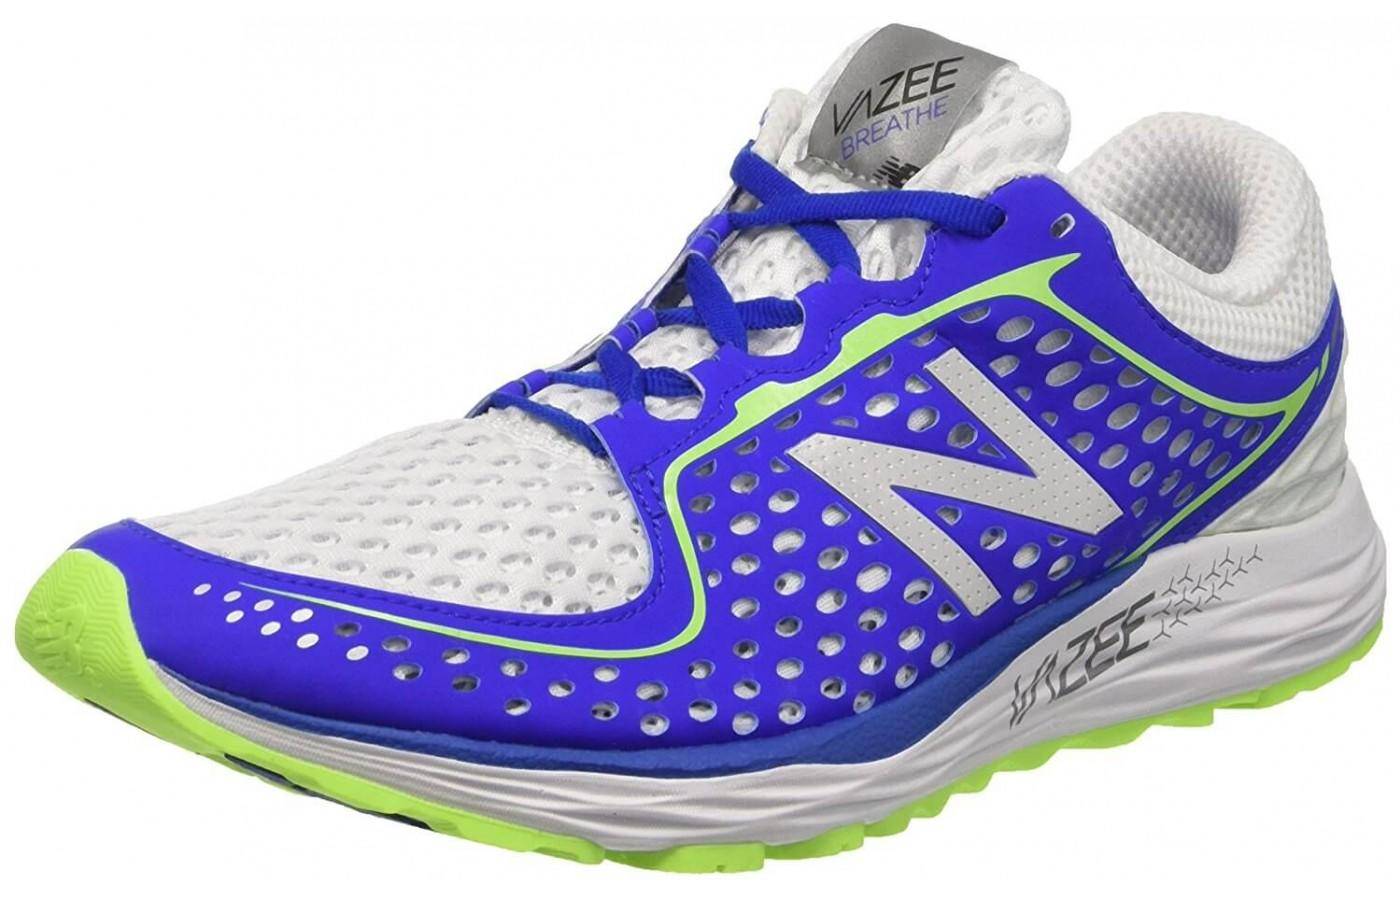 The synthetic perforated rib cage upper secures the foot in the New Balance Vazee Breathe.